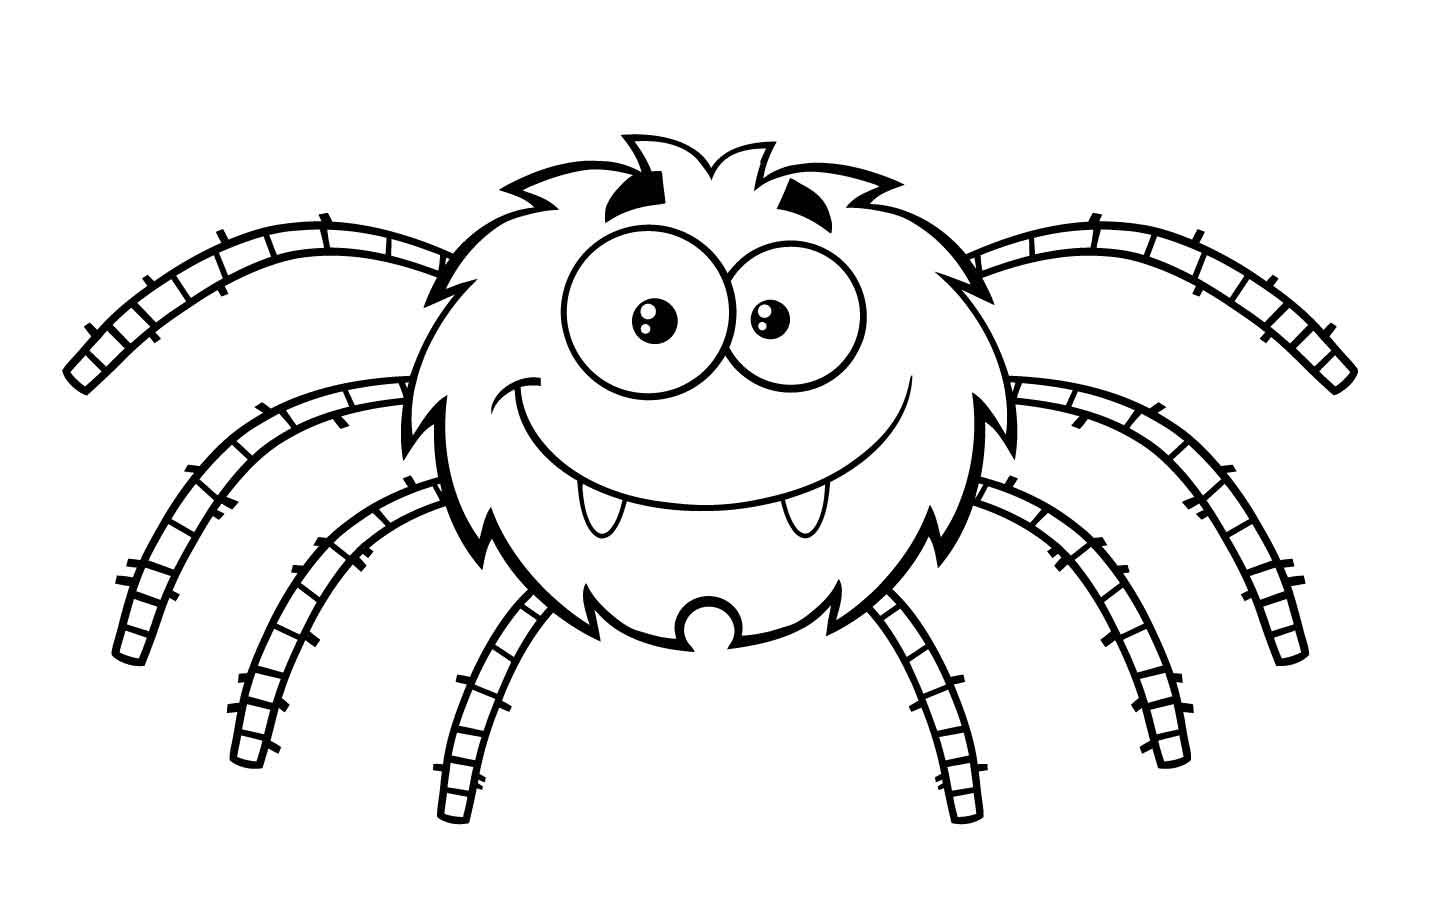 coloring halloween spider pictures printable halloween decoration cutouts pictures spider halloween coloring